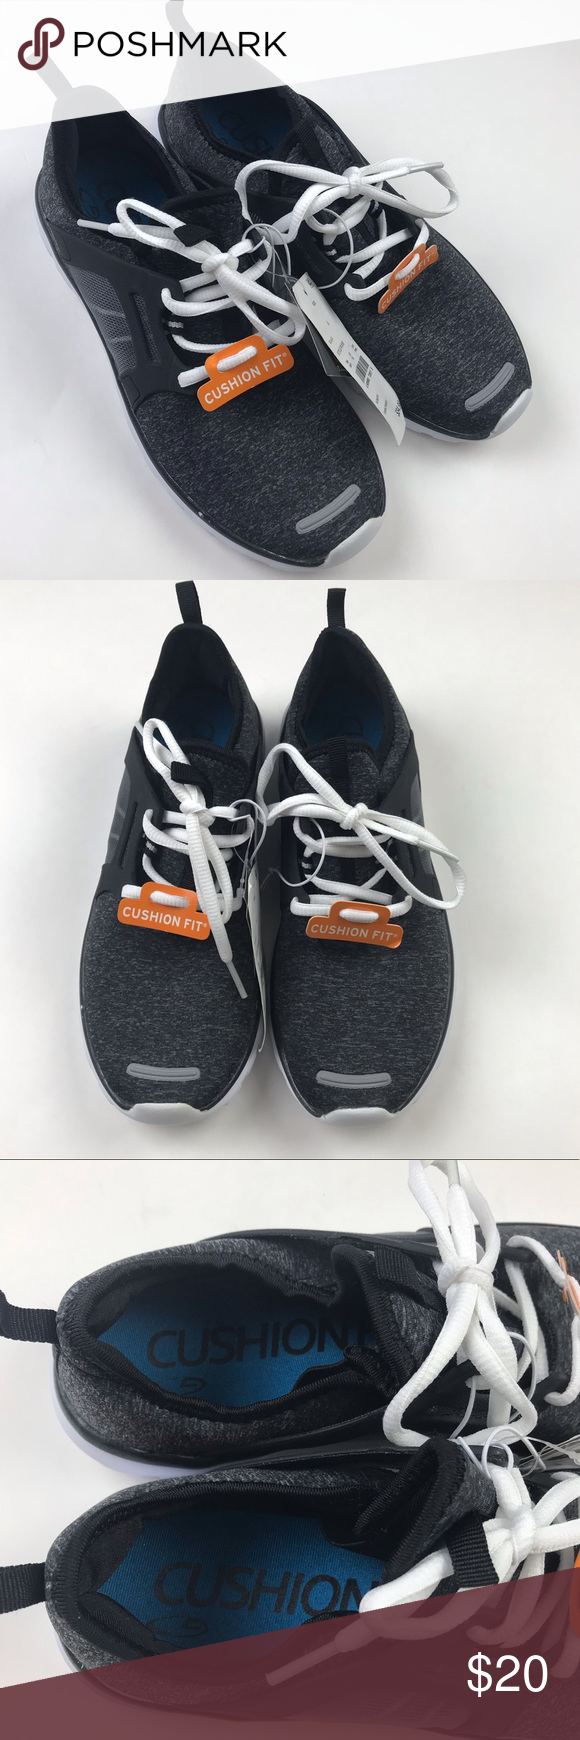 2f02c1d391f52f C9 Champion Poise Black Athletic Shoes Brand new with tags Sz 6 Cushioned  insole Smoke free